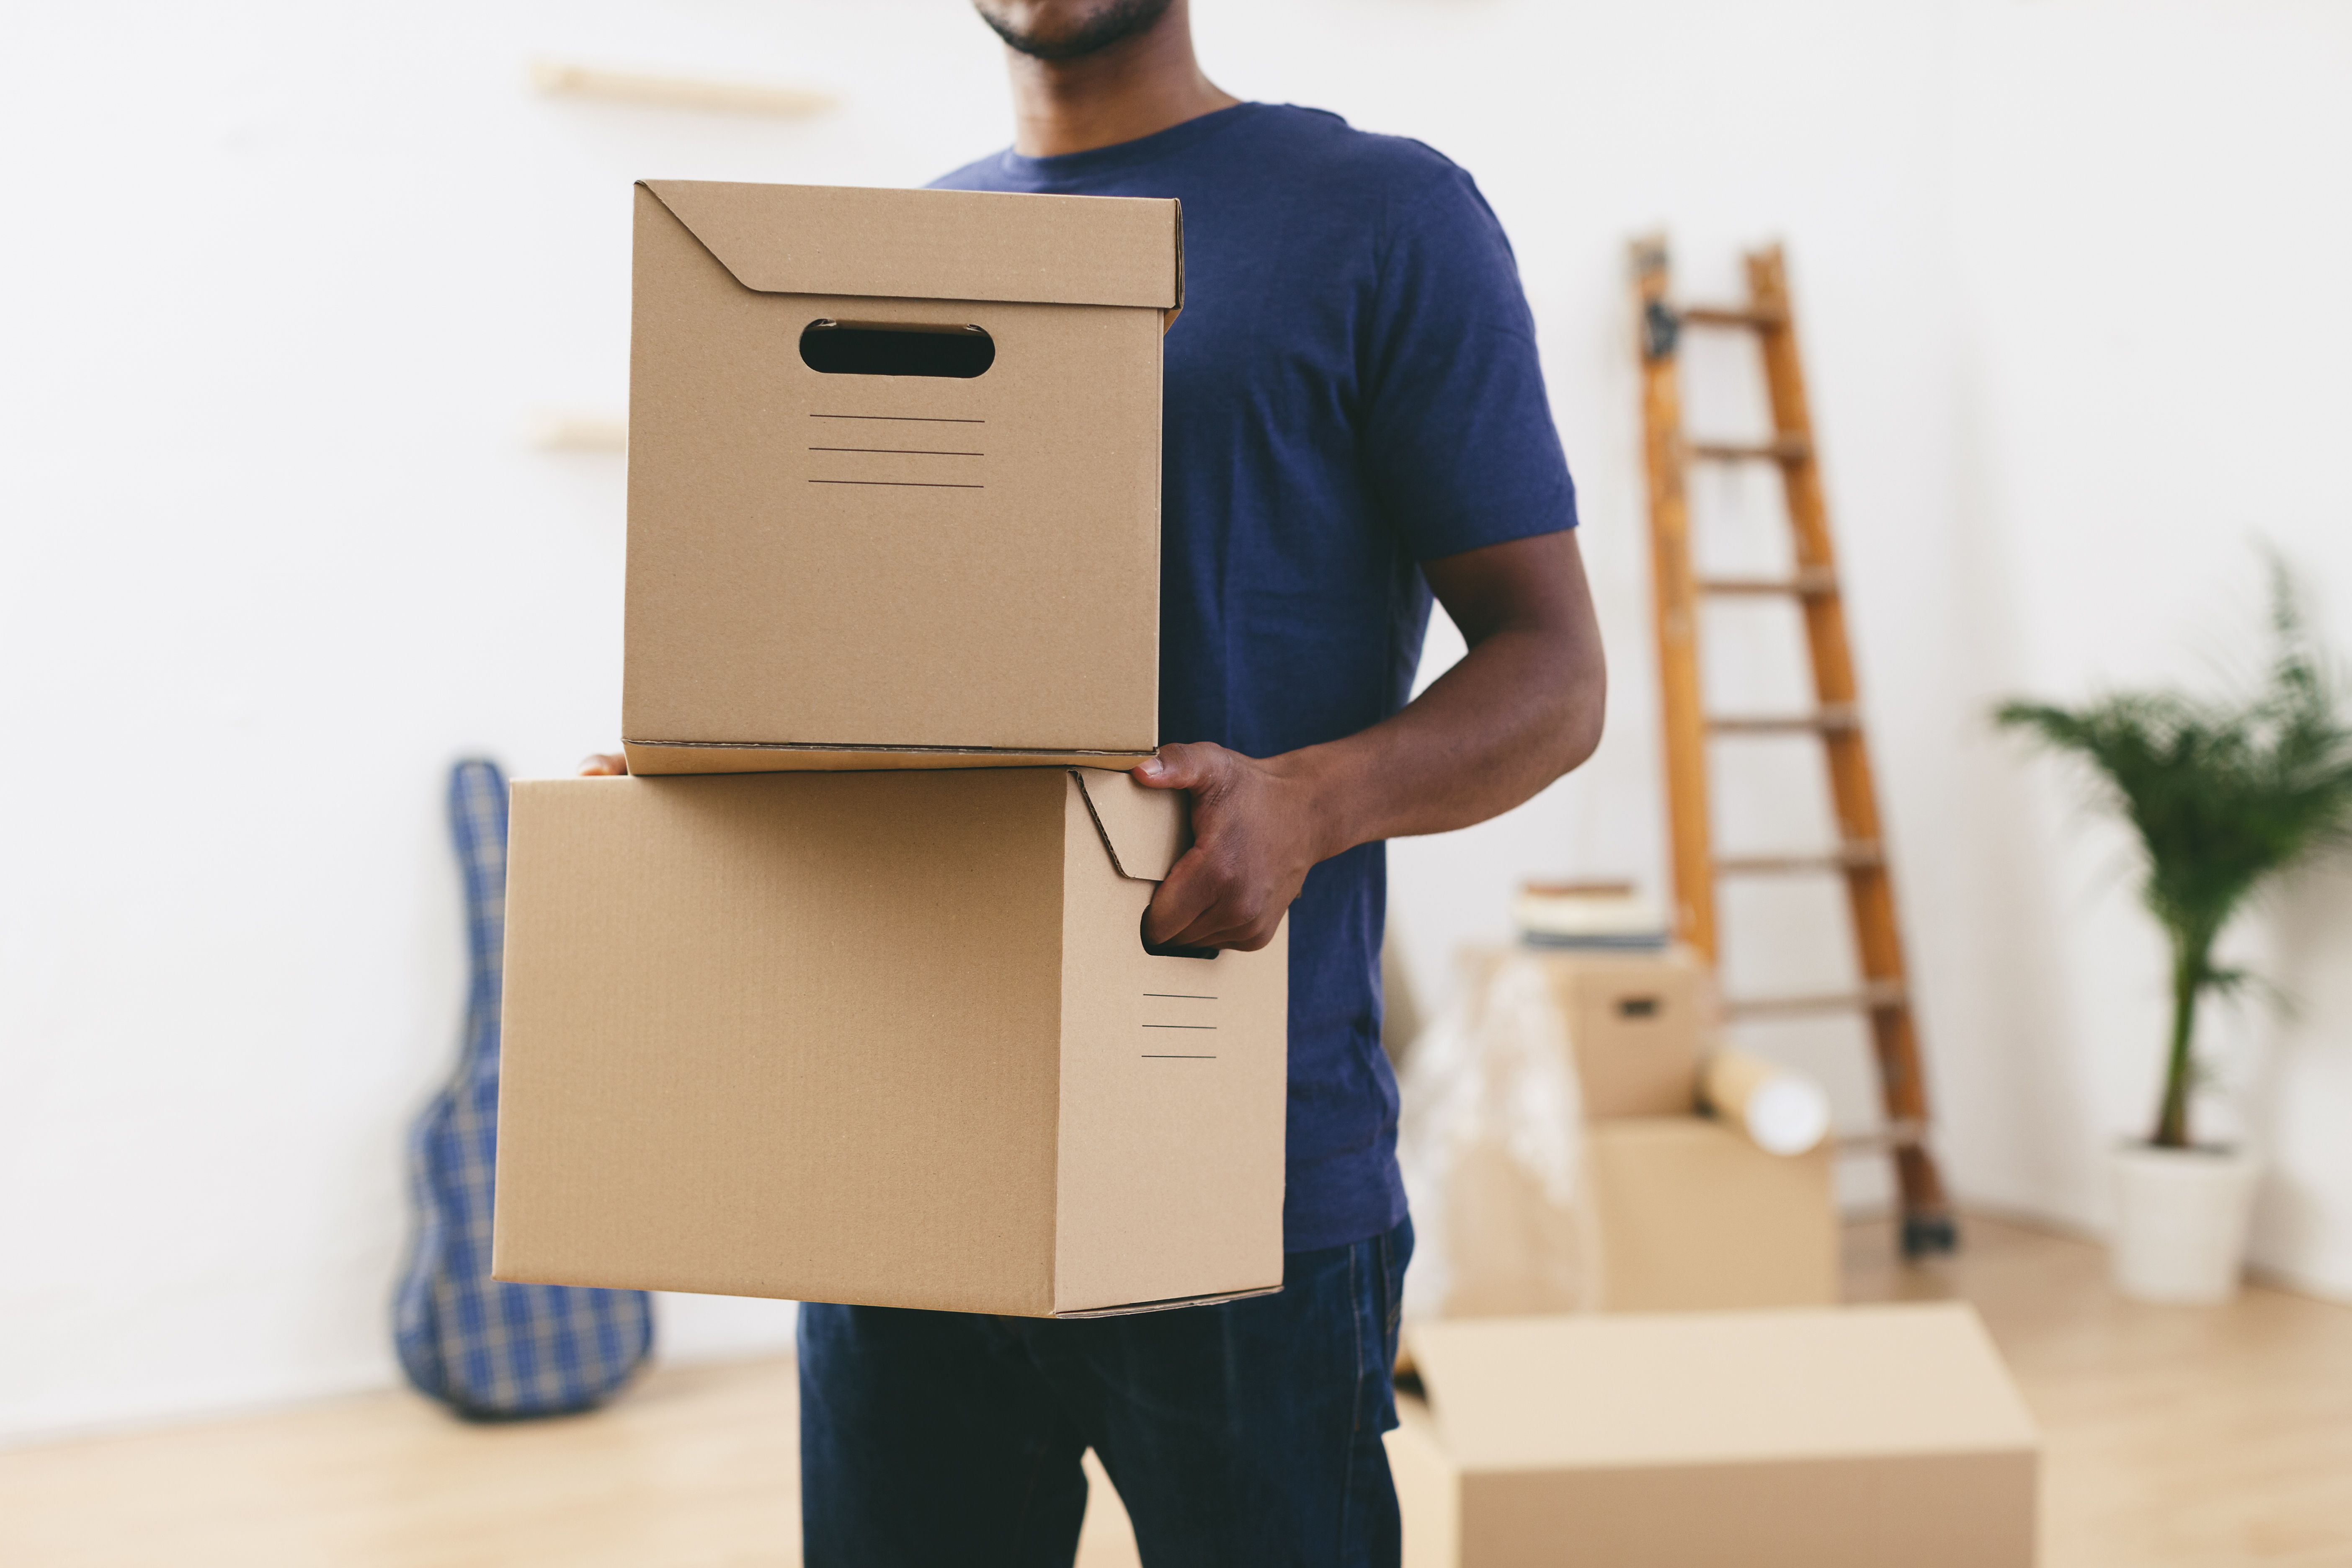 8 Life Skills You Should Have Before Moving Out